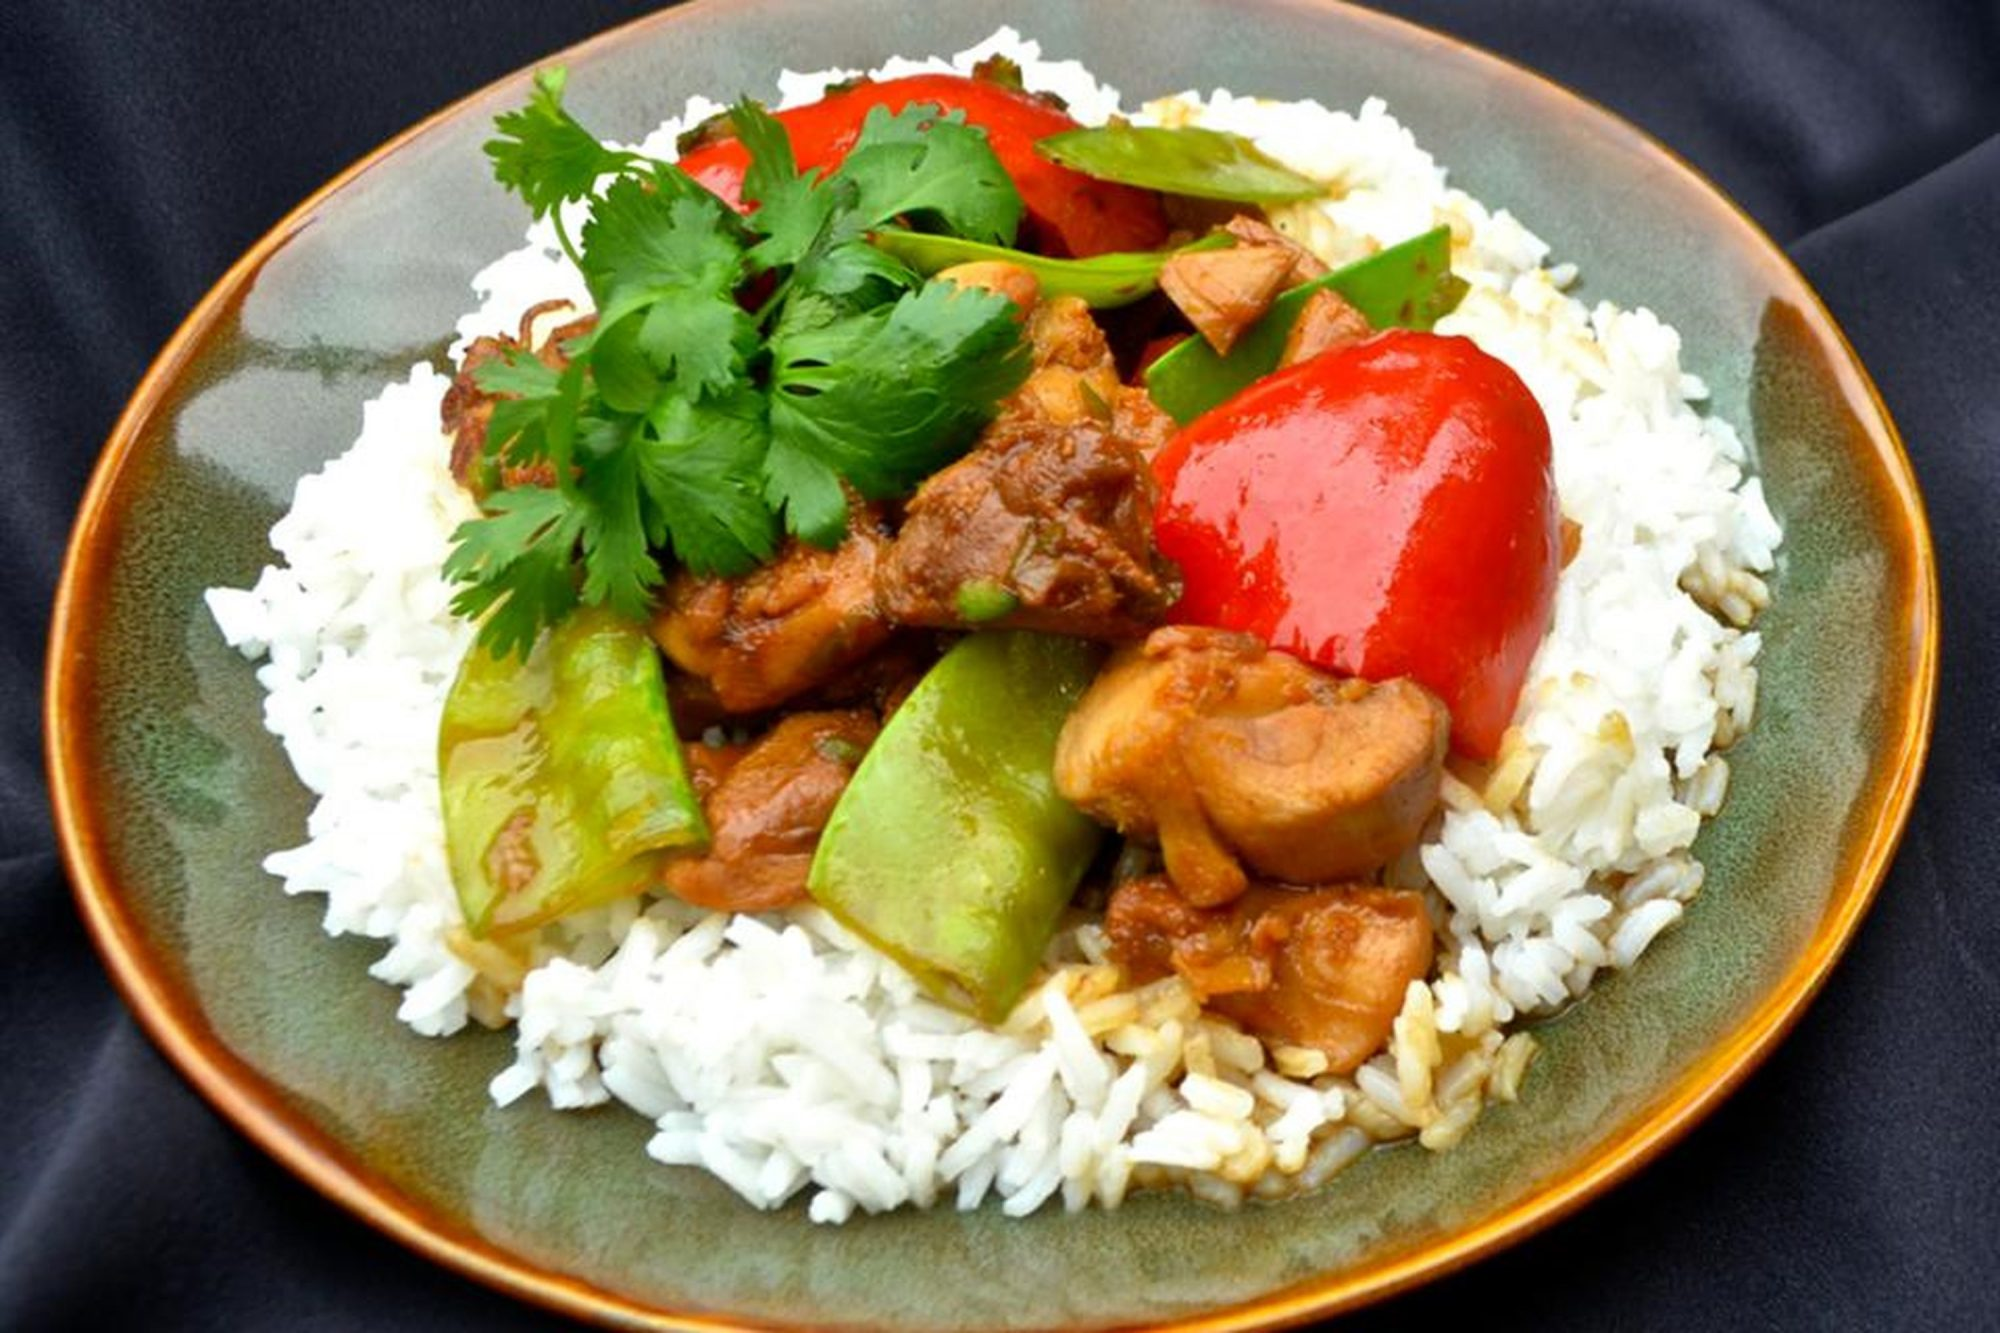 Orange chicken with vegetables over white rice on plate